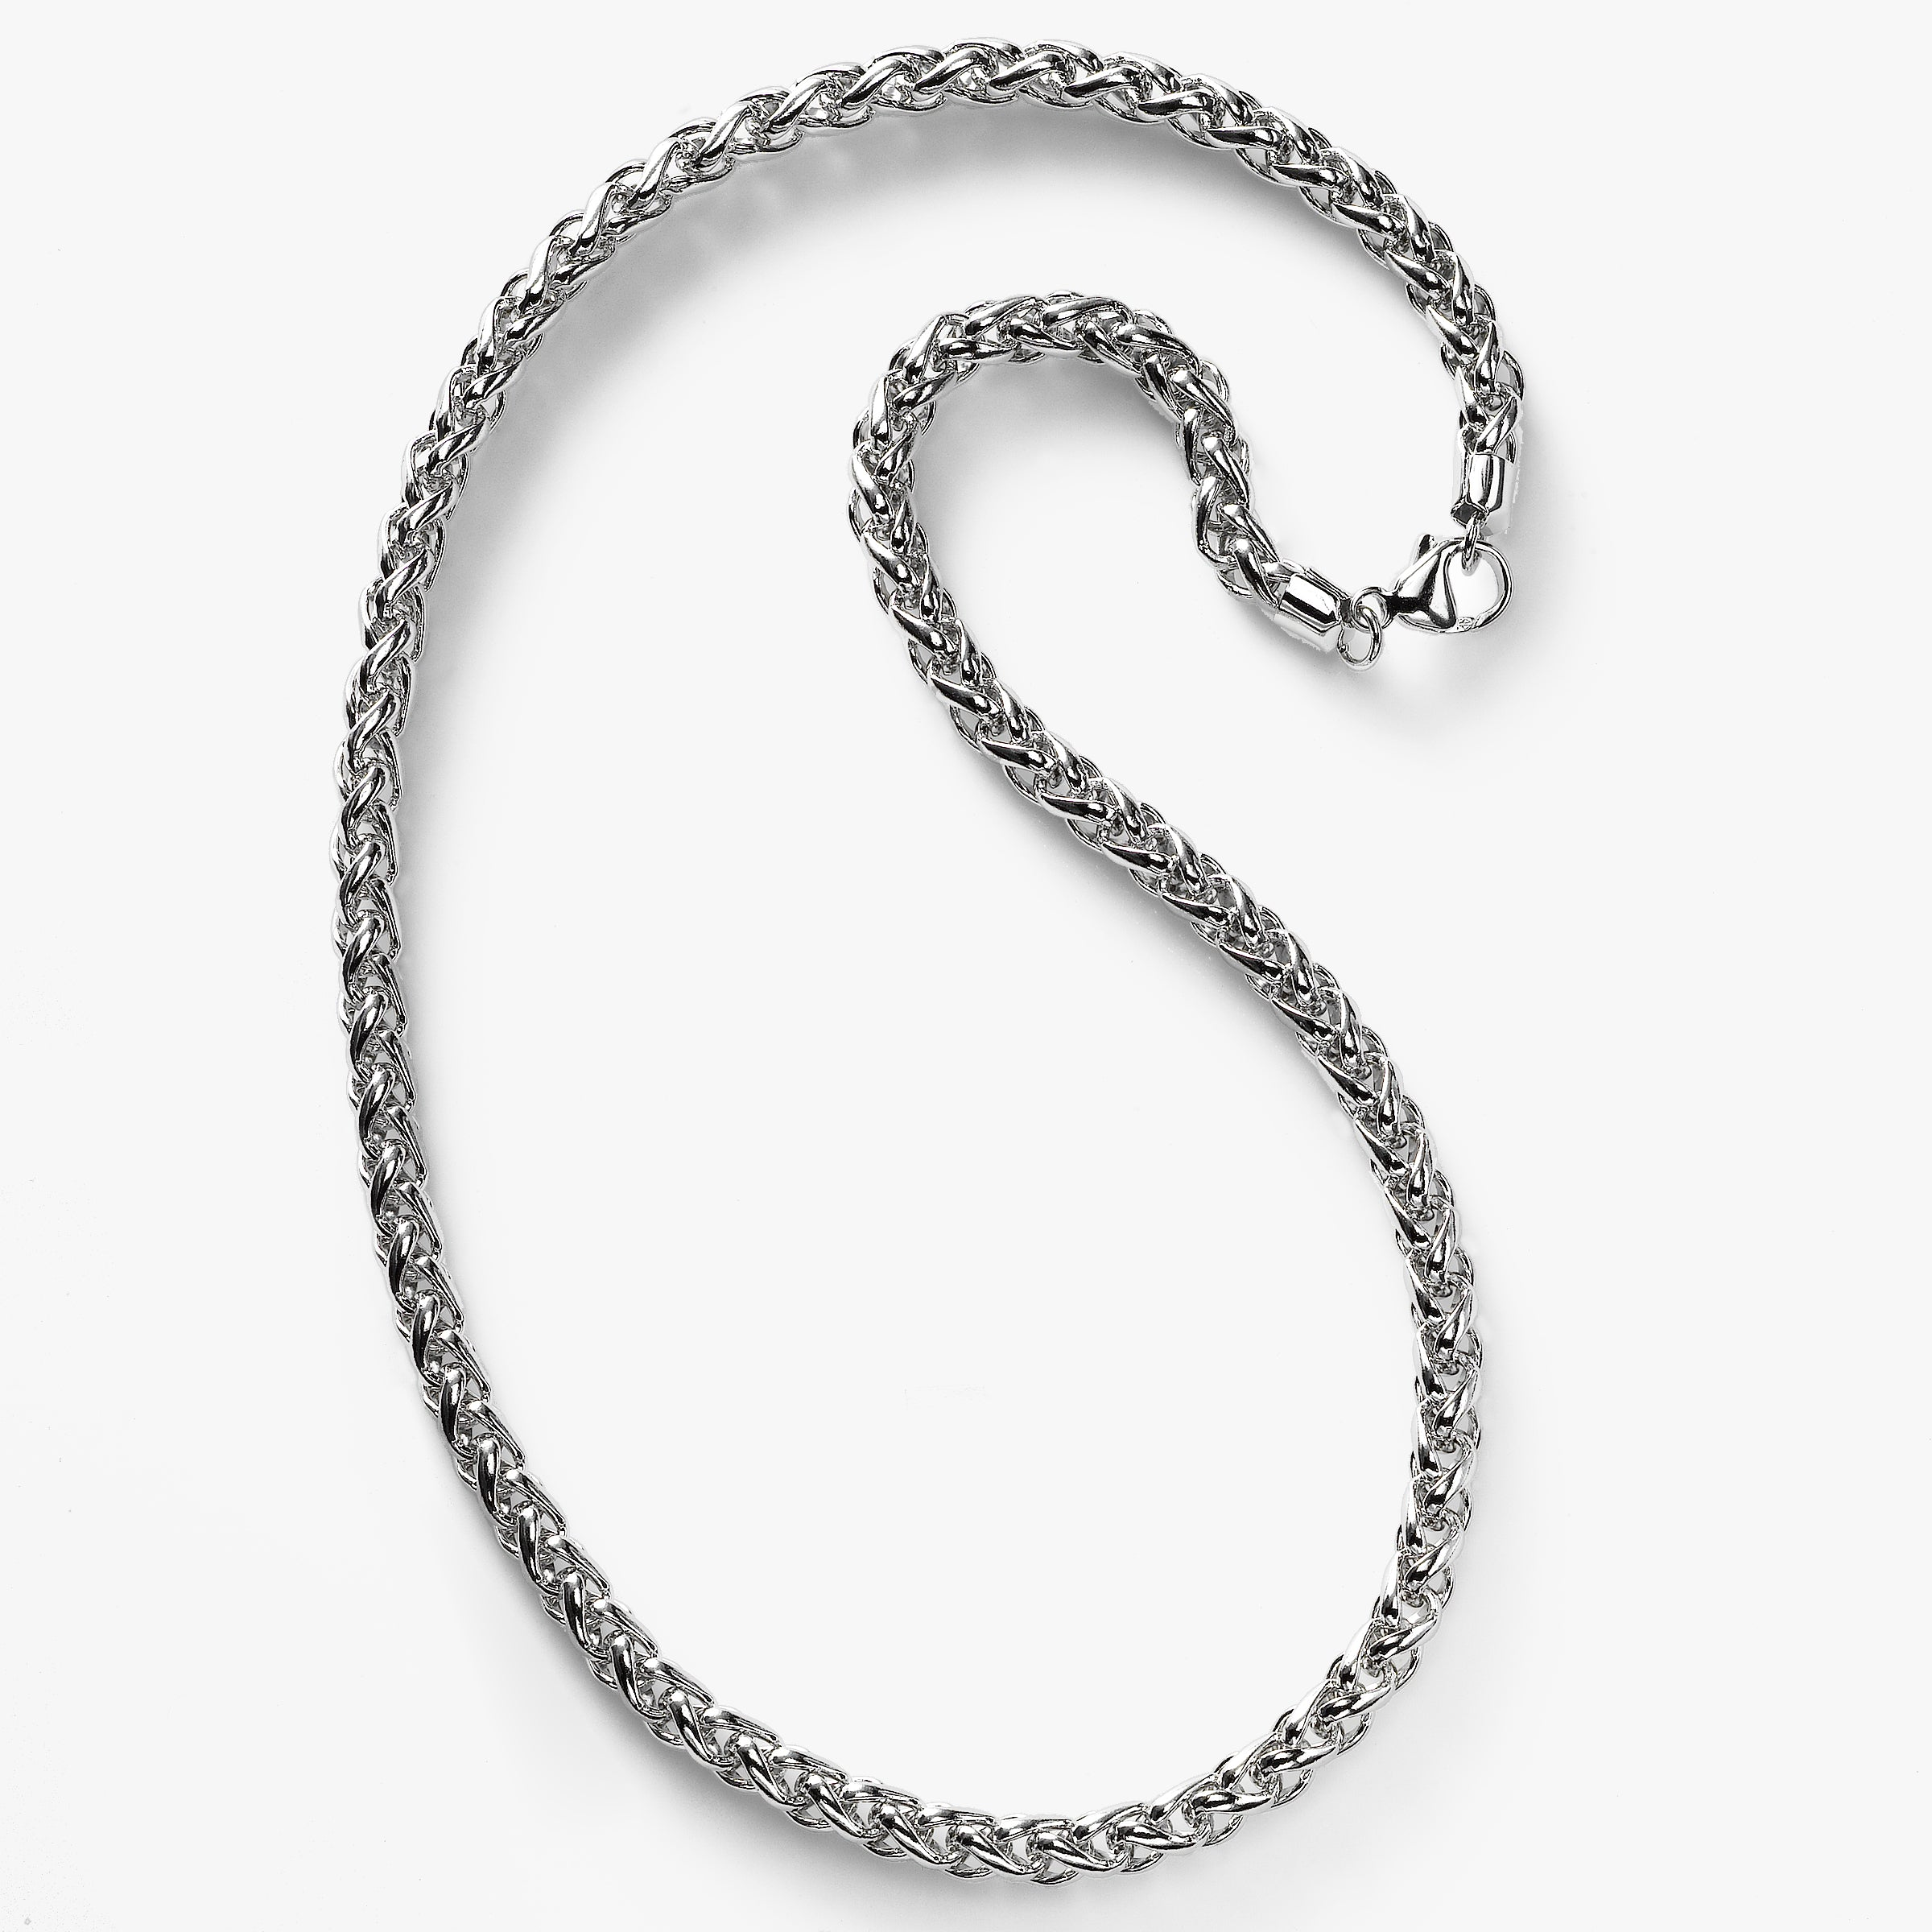 Three-Dimensional Wheat Chain Necklace, 18 Inches, Sterling Silver